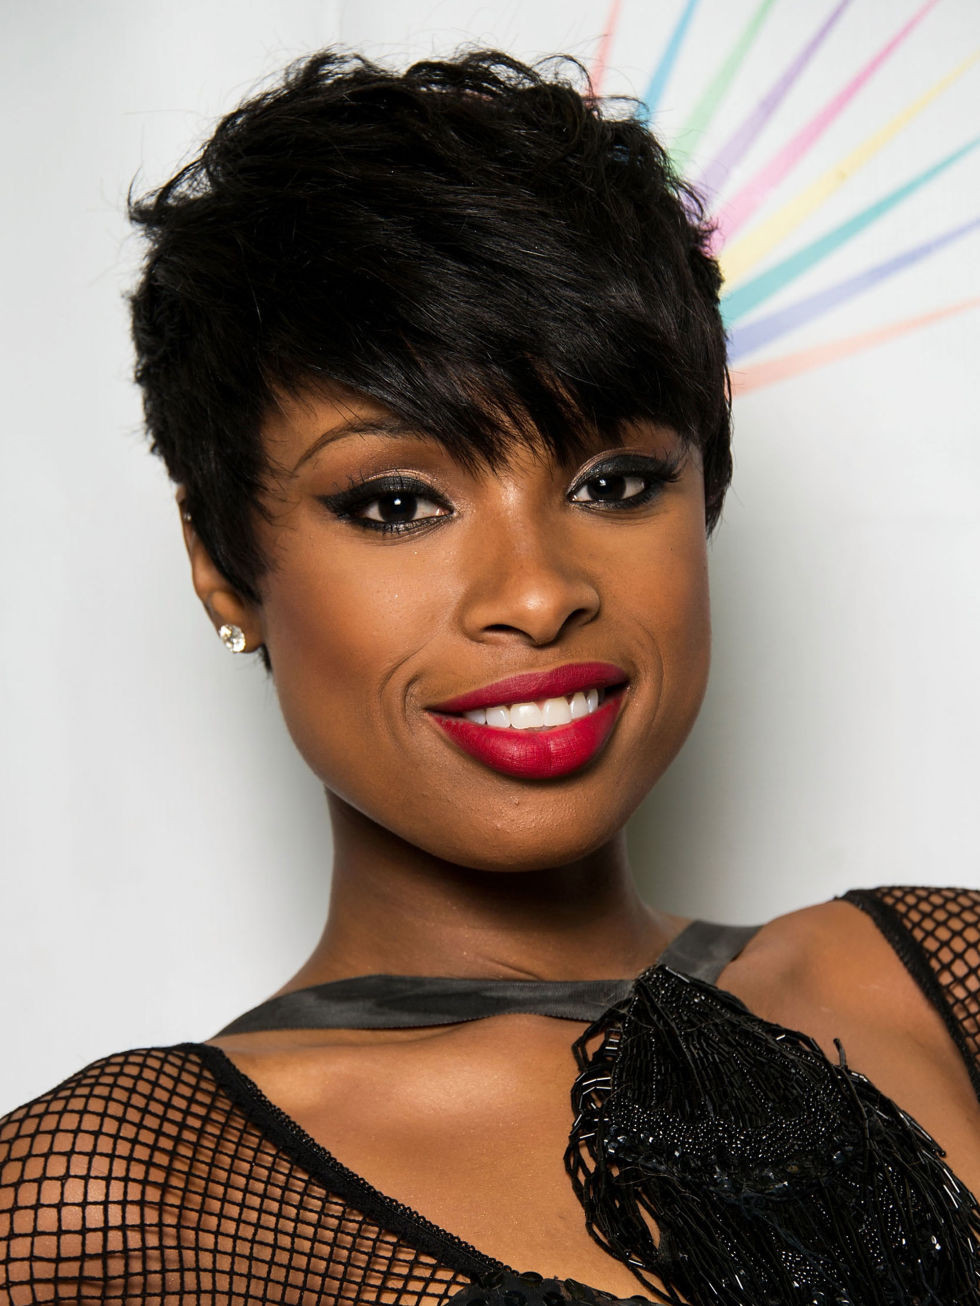 Black Women Hairstyles  70 Best Short Hairstyles for Black Women with Thin Hair